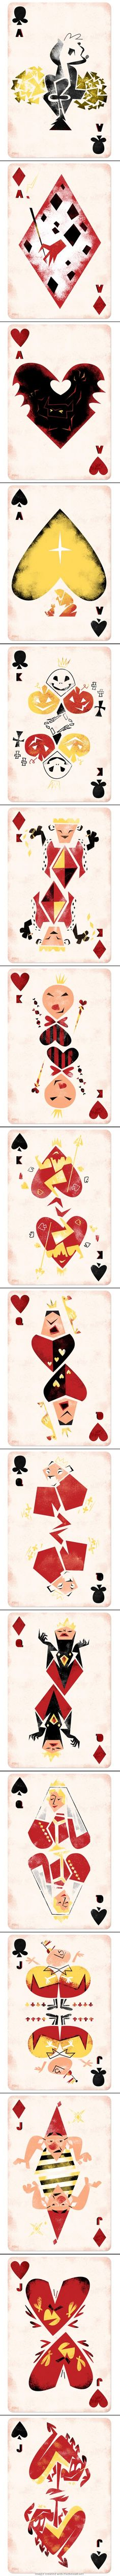 Disney-Inspired Playing Cards